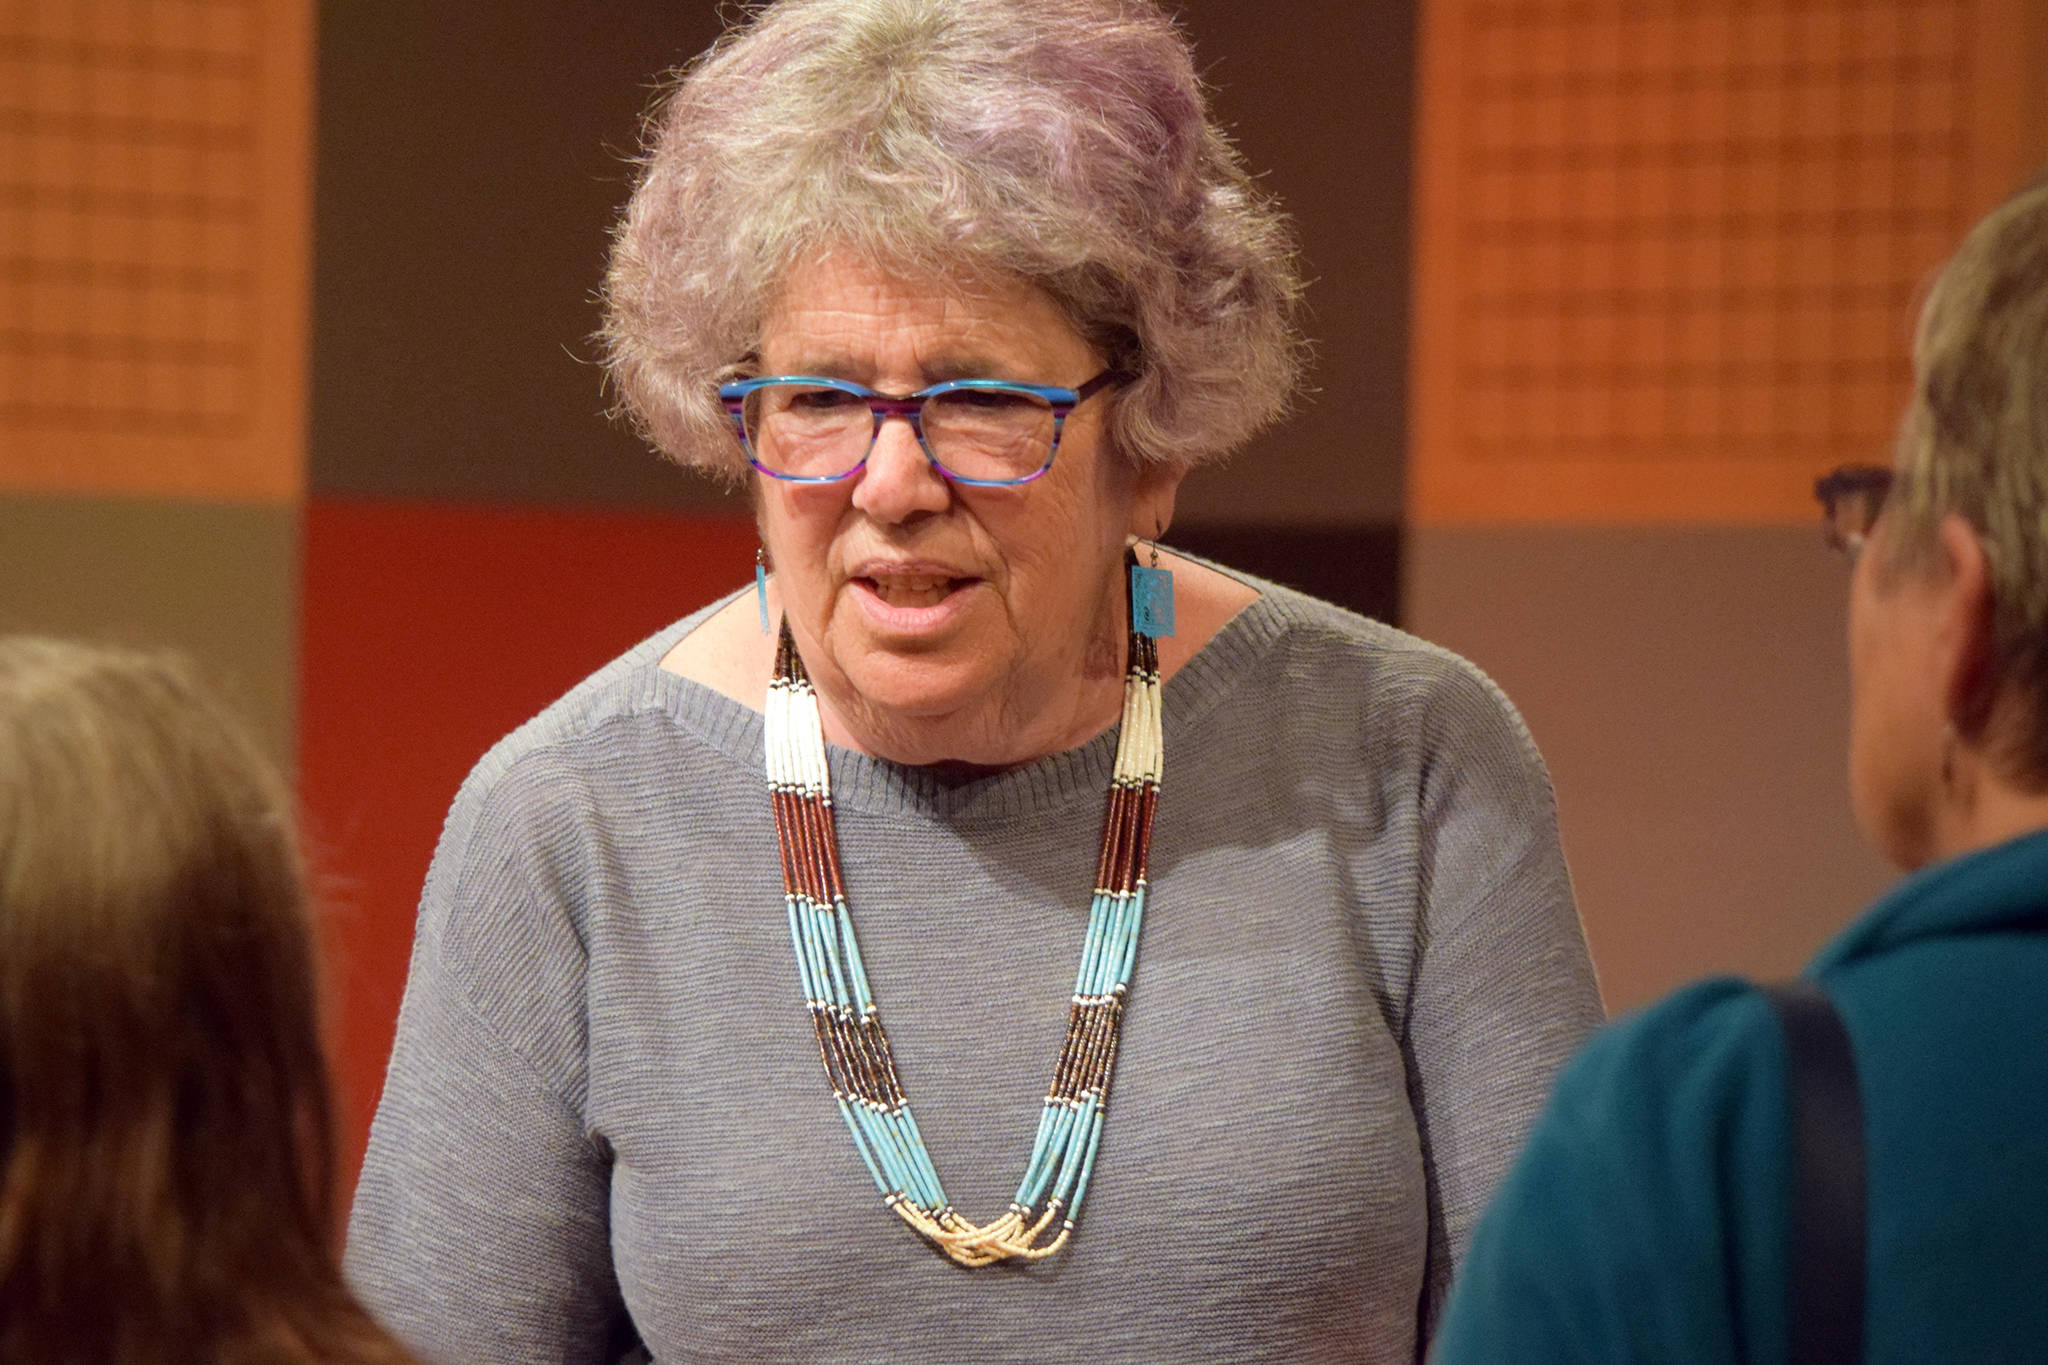 Susan Fitzgerald speaks about her volunteer work at a refugee shelter in New Mexico during a presentation in Juneau on Friday, May 31, 2019. (Ben Hohenstatt   Juneau Empire)